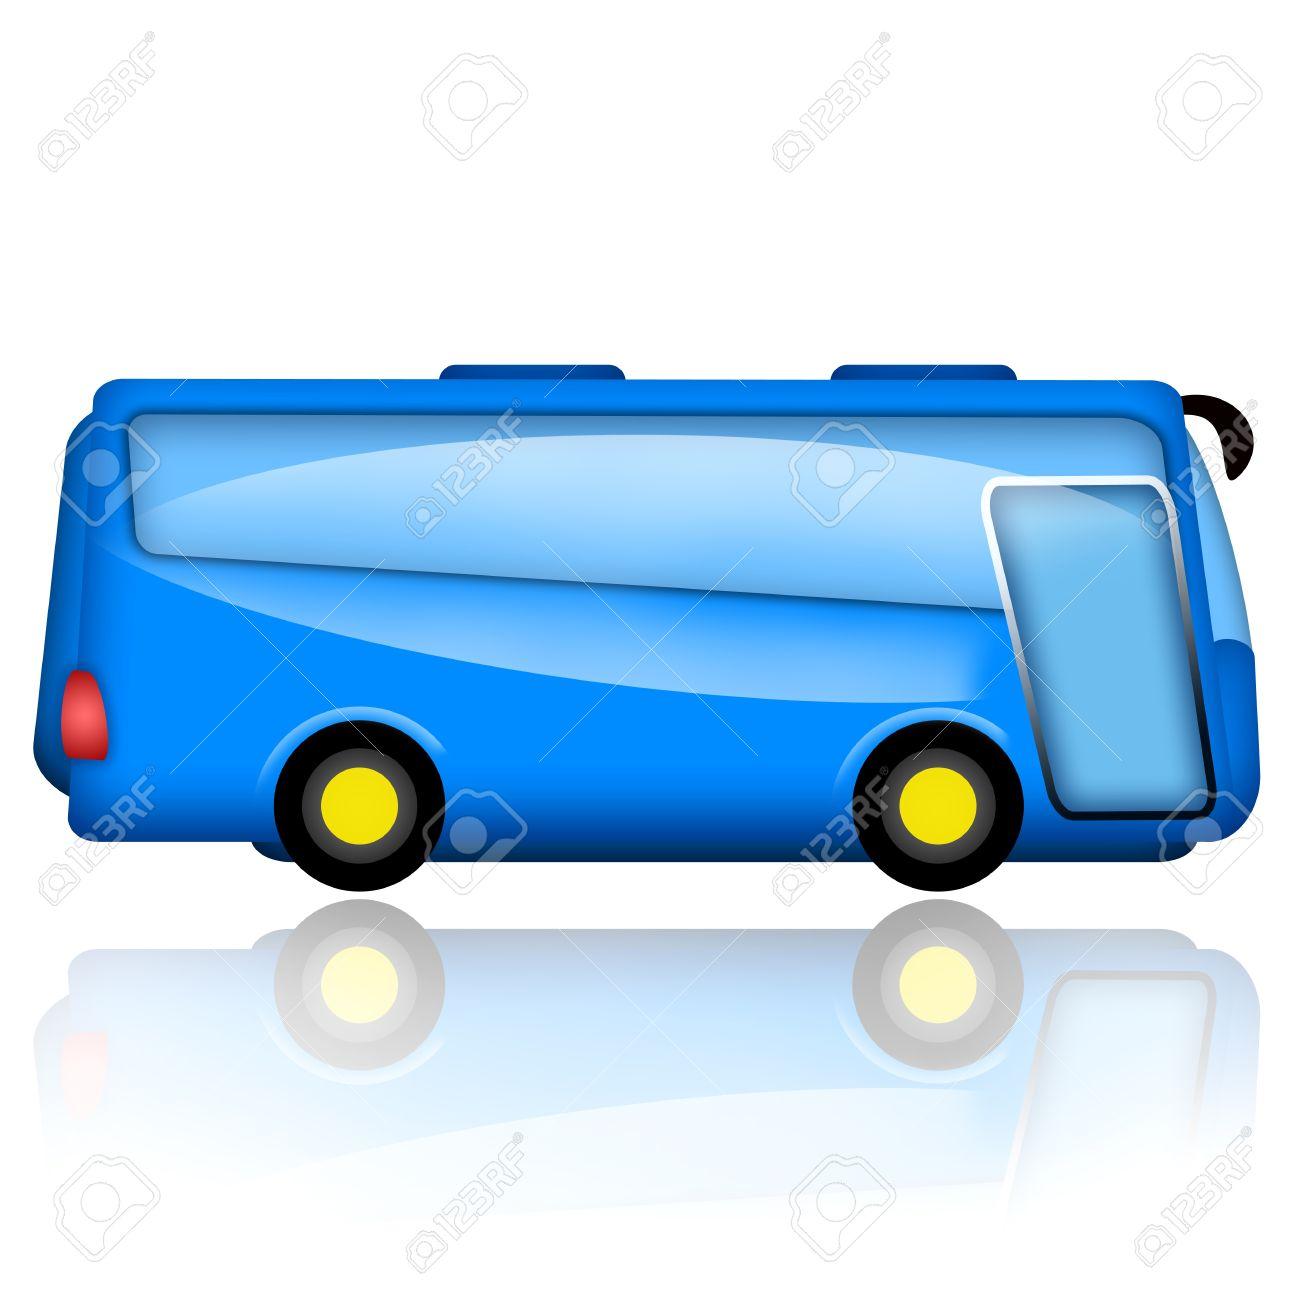 6,964 Service Bus Stock Vector Illustration And Royalty Free.